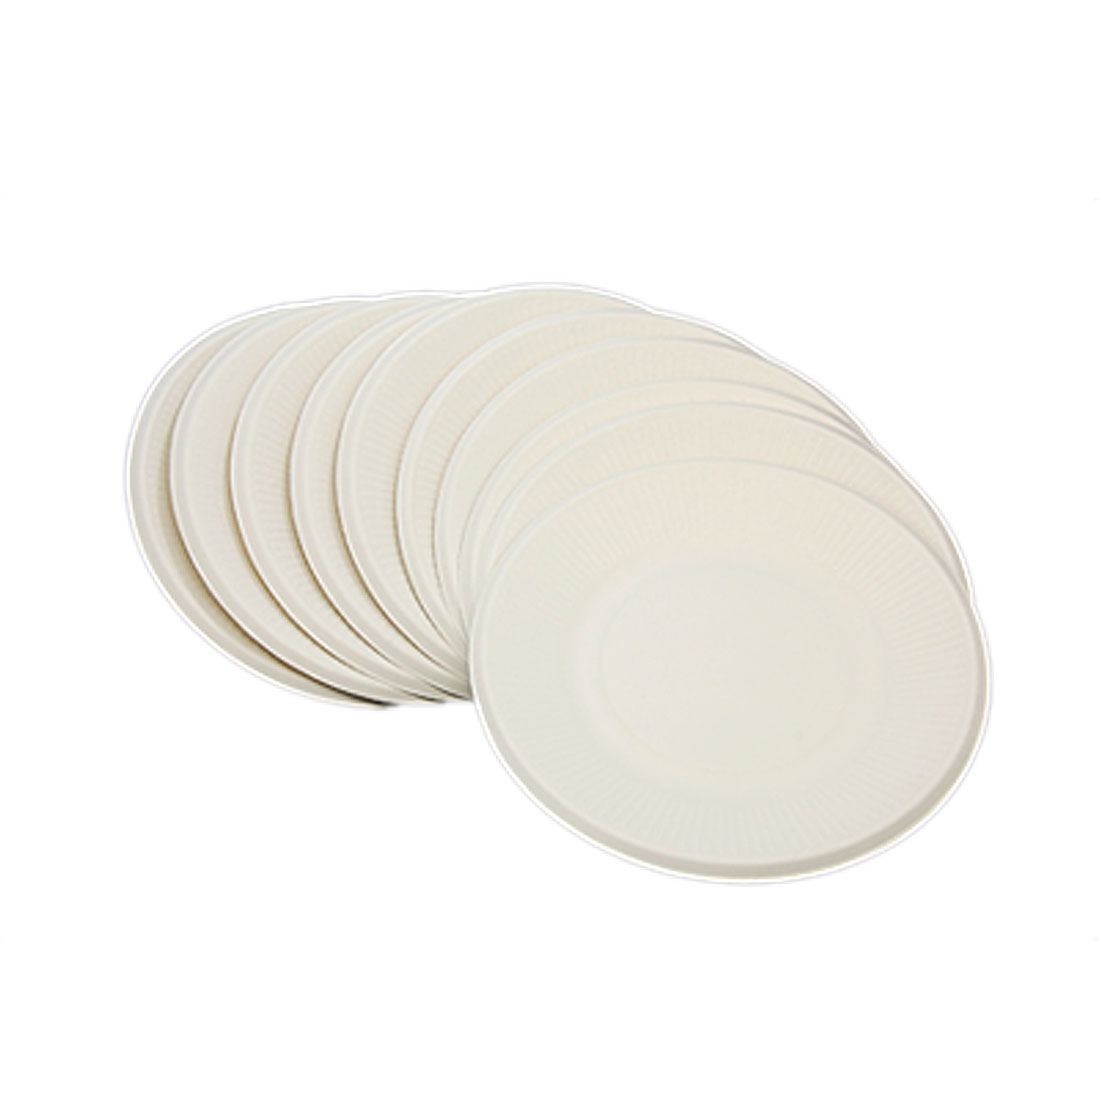 Big Size Disposable 10 PCS Reep Plup Snack Dishes 205mm